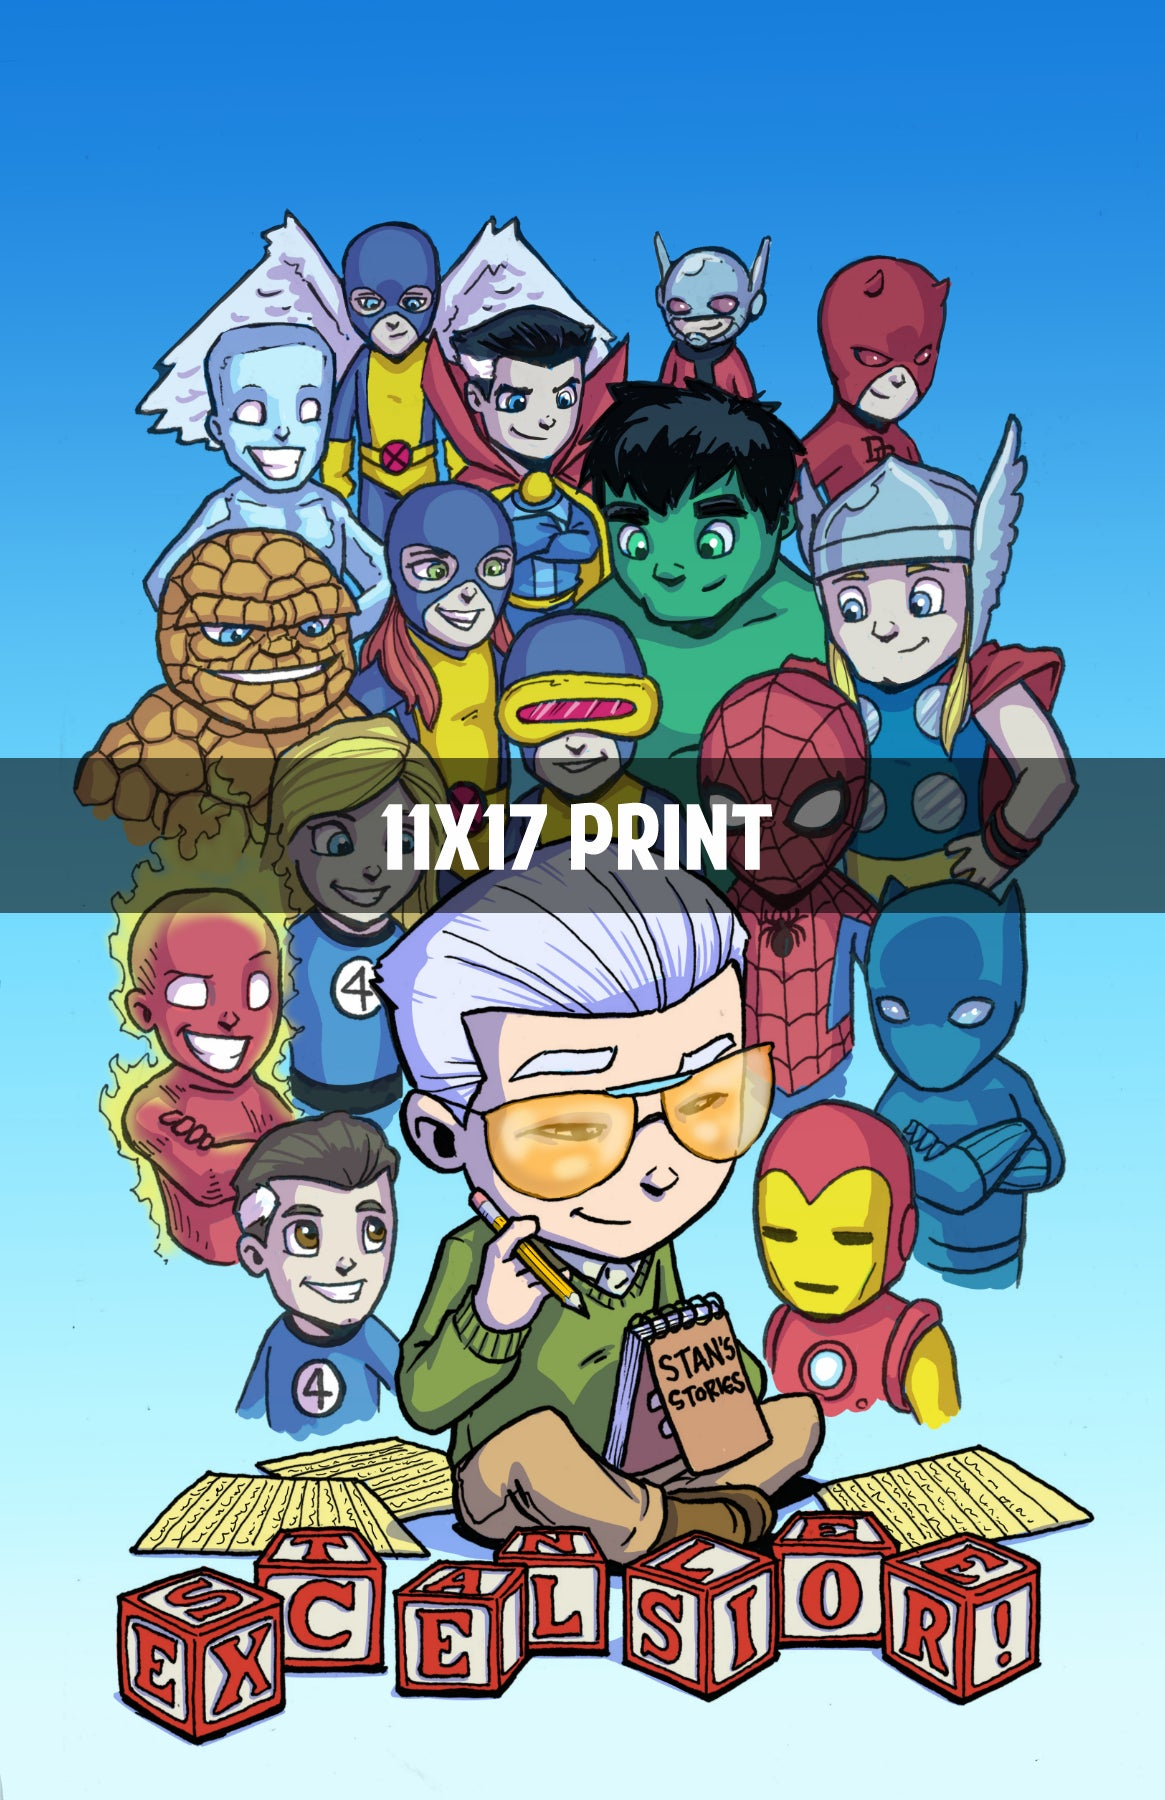 Stan Lee Tribute - 11x17 Print